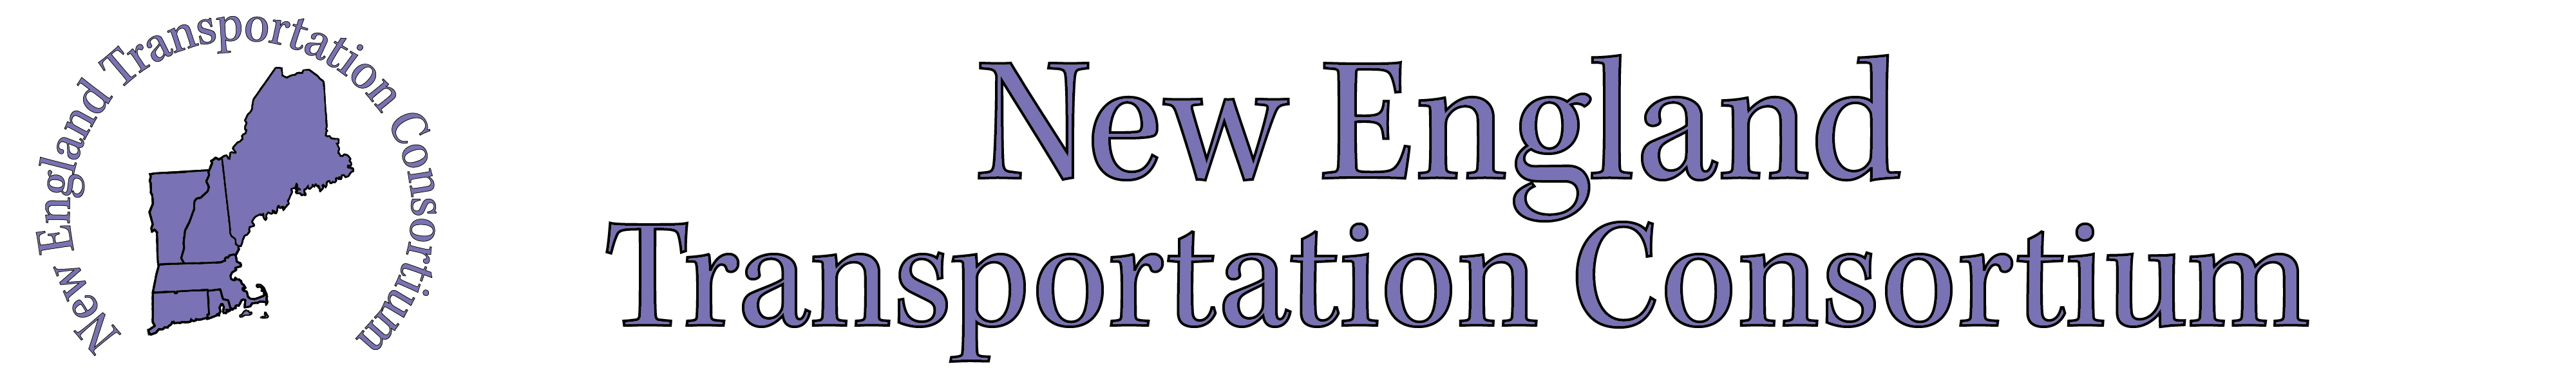 New England Transportation Consortium